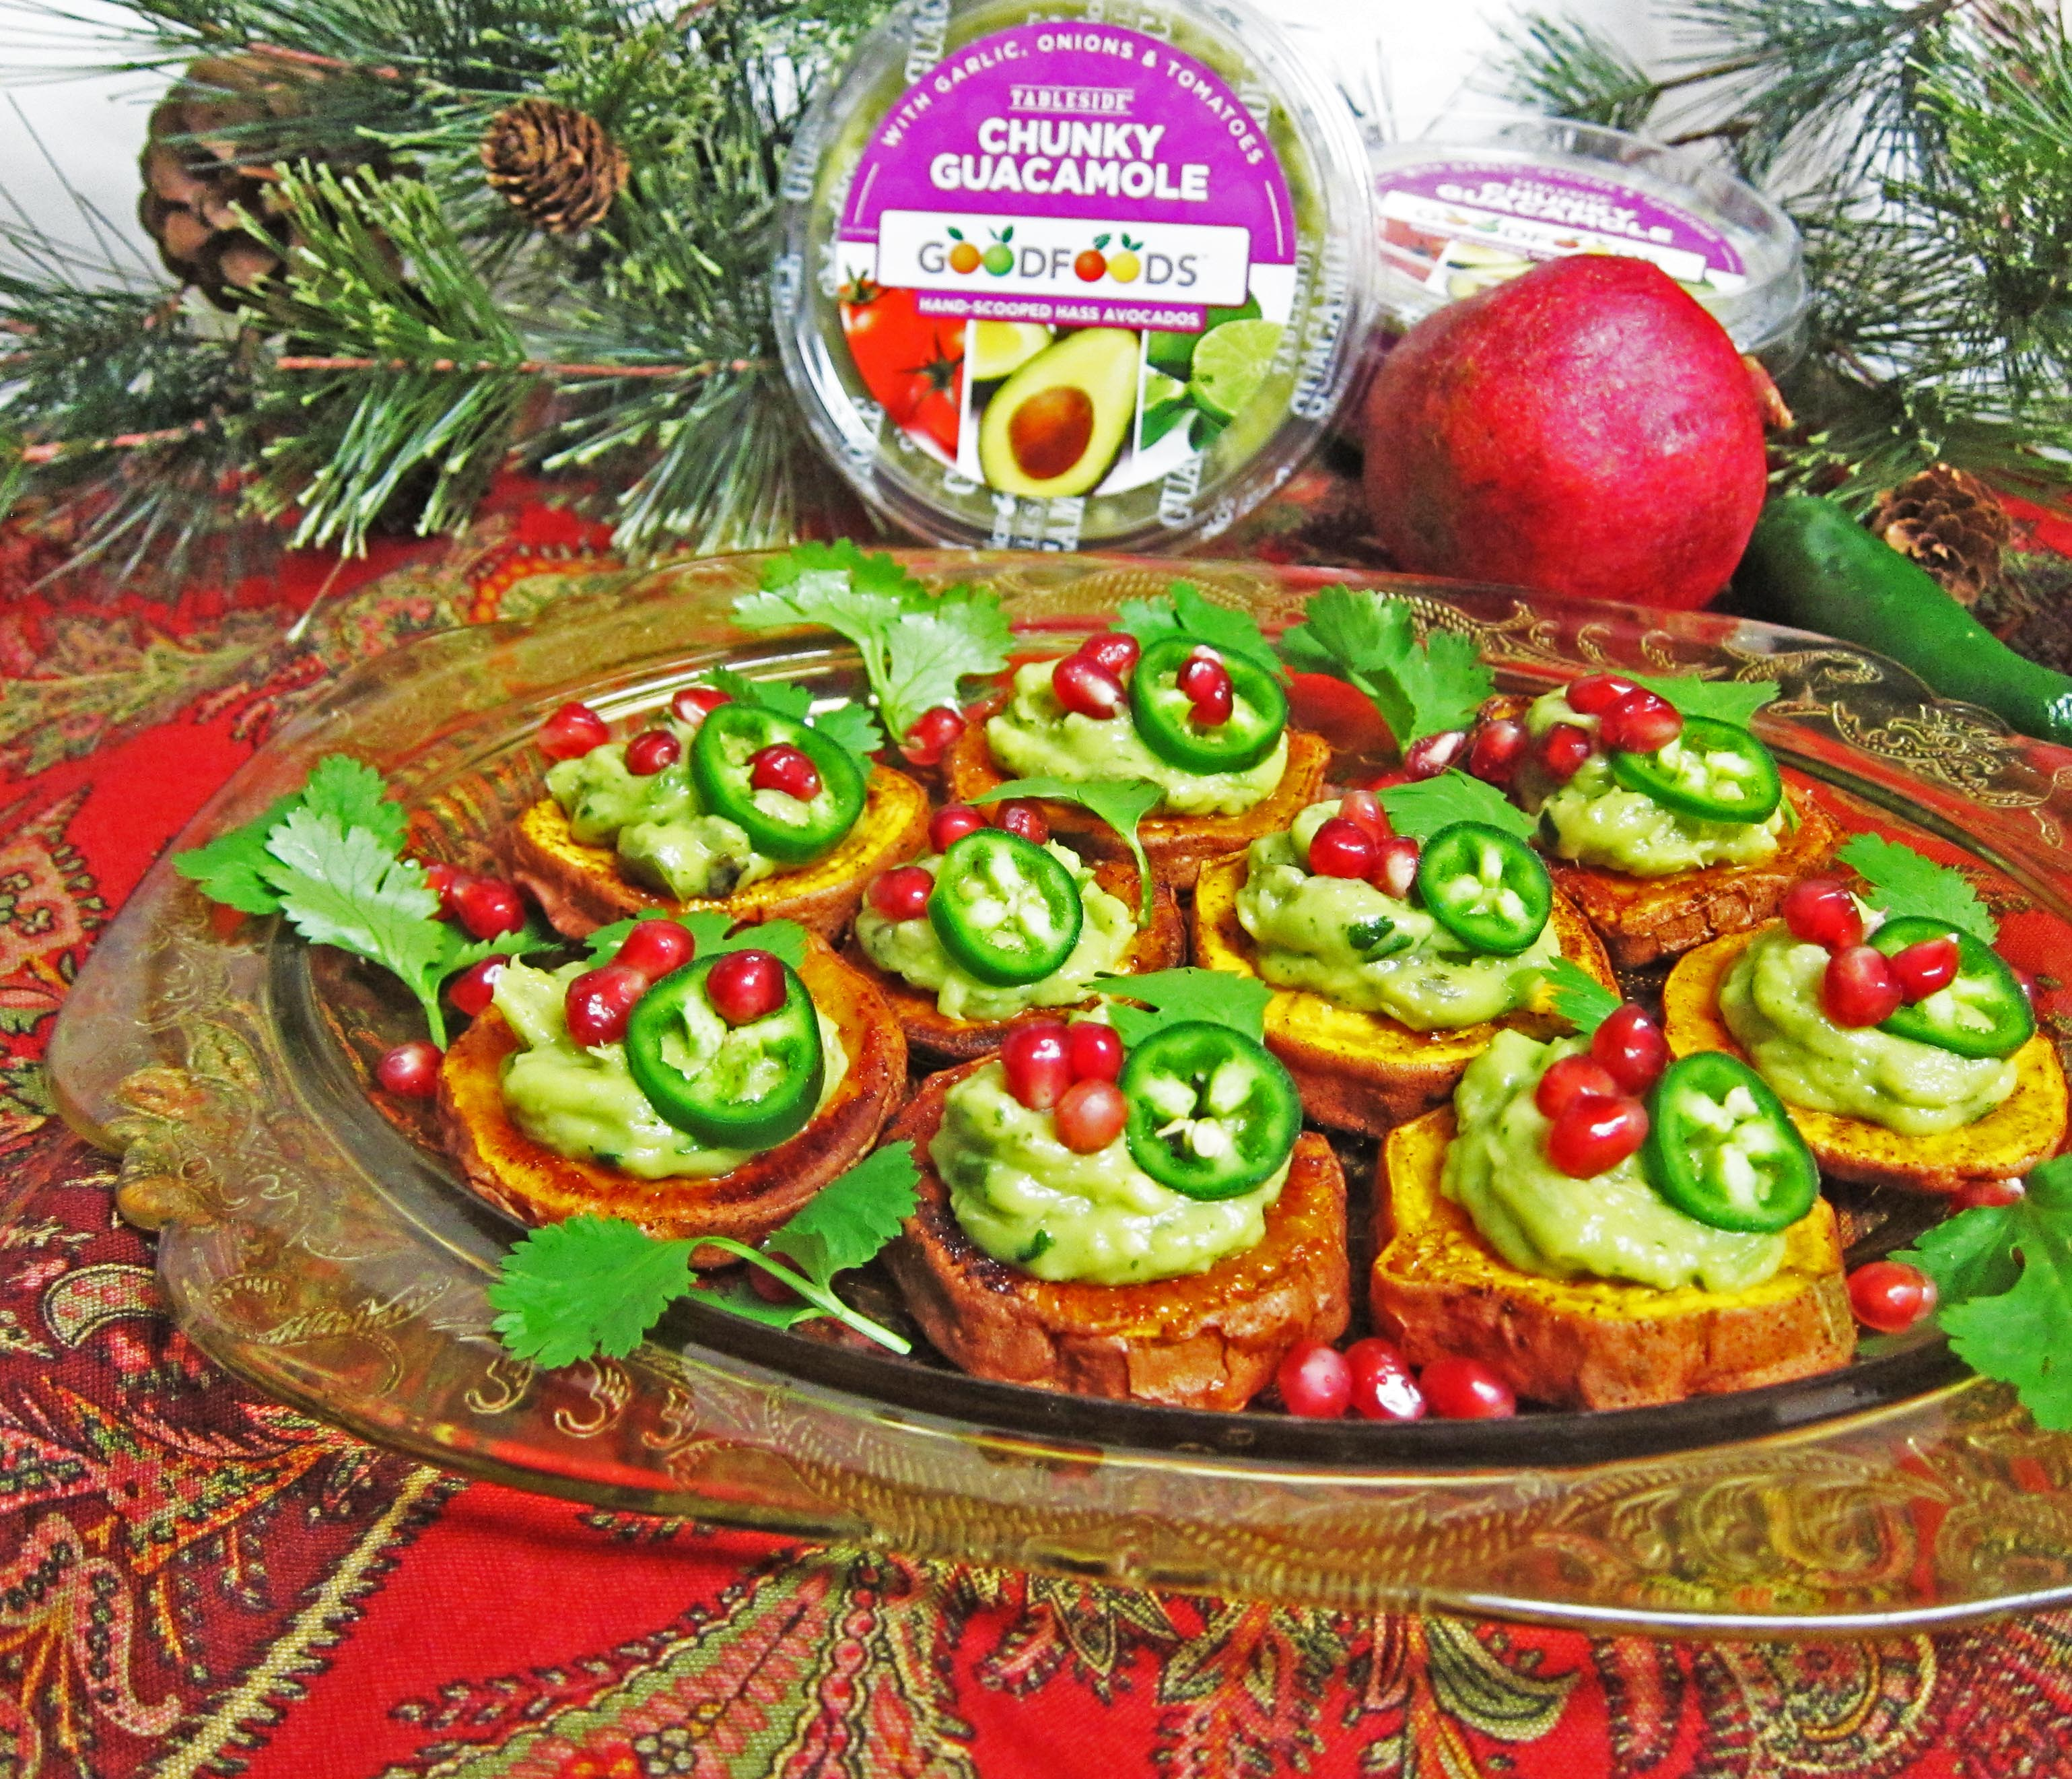 Holiday Entertaining! Mini Sweet Potato Avocado Crostini and GOODFOODS Guacamole